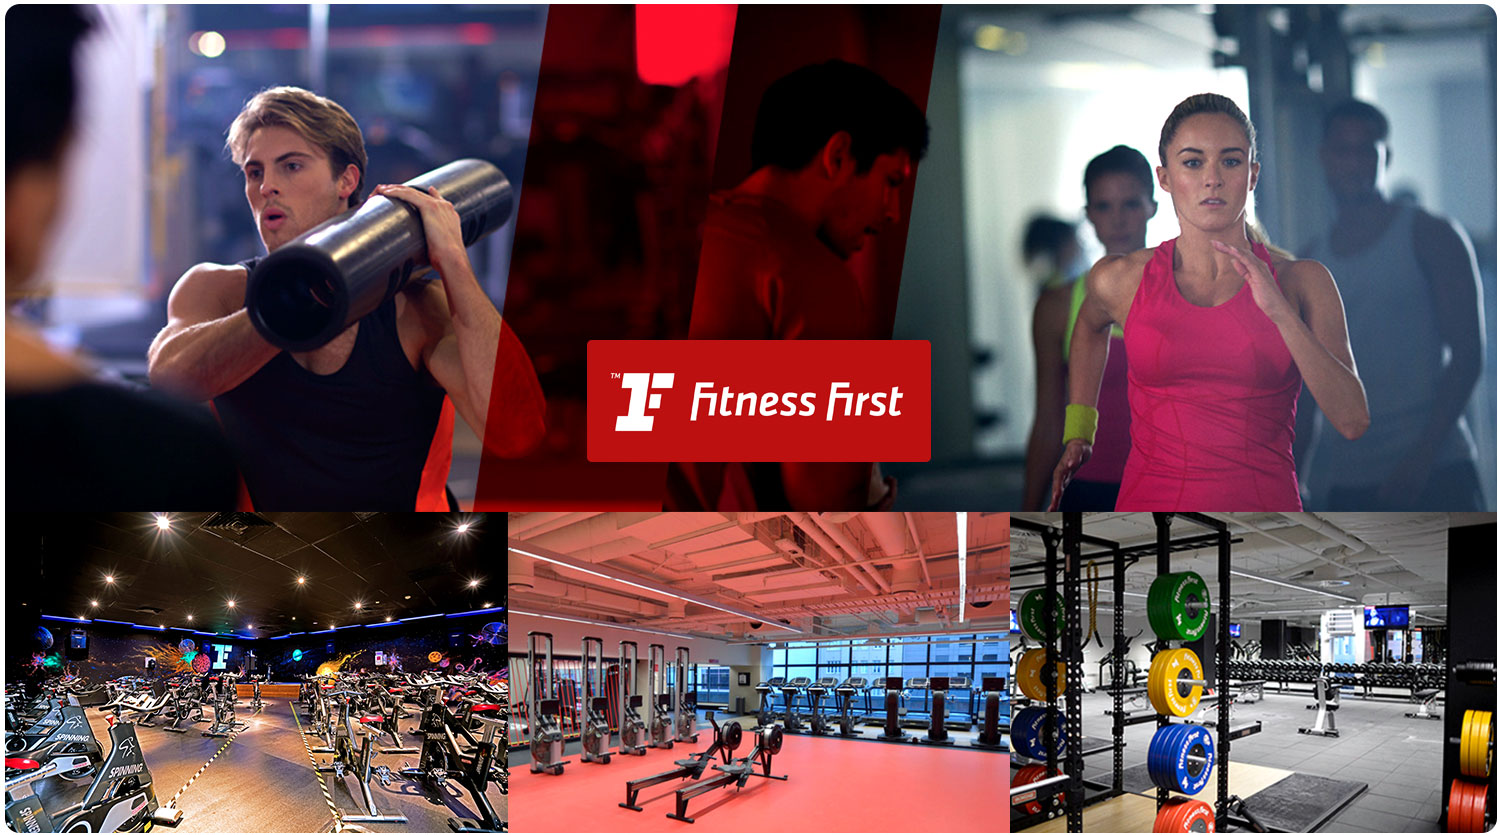 Start your Fitness Journey with Fitness First with only $14.95 for 14 days at Fitness First Sydney NSW. Experience our first class gym and freestyle classes inc. Pilates, Yoga, HIIT, Les Mills and more. Take the first step with Fitness First Sydney NSW.